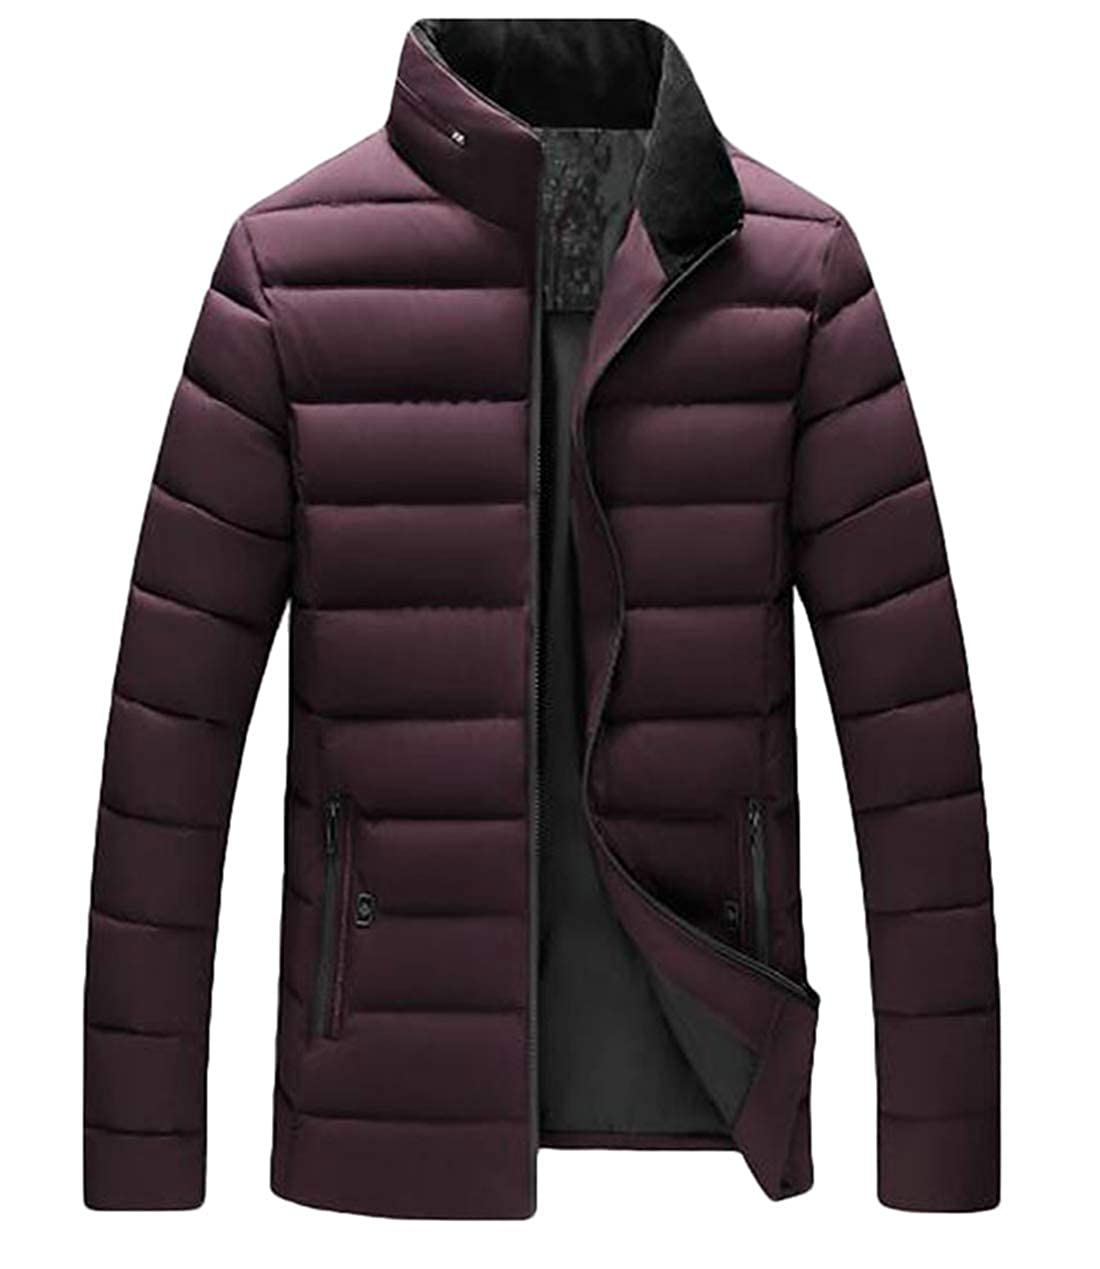 Fllay Mens Lightweight Thicken Winter Stand Collar Warm Quilted Padded Puffer Jacket